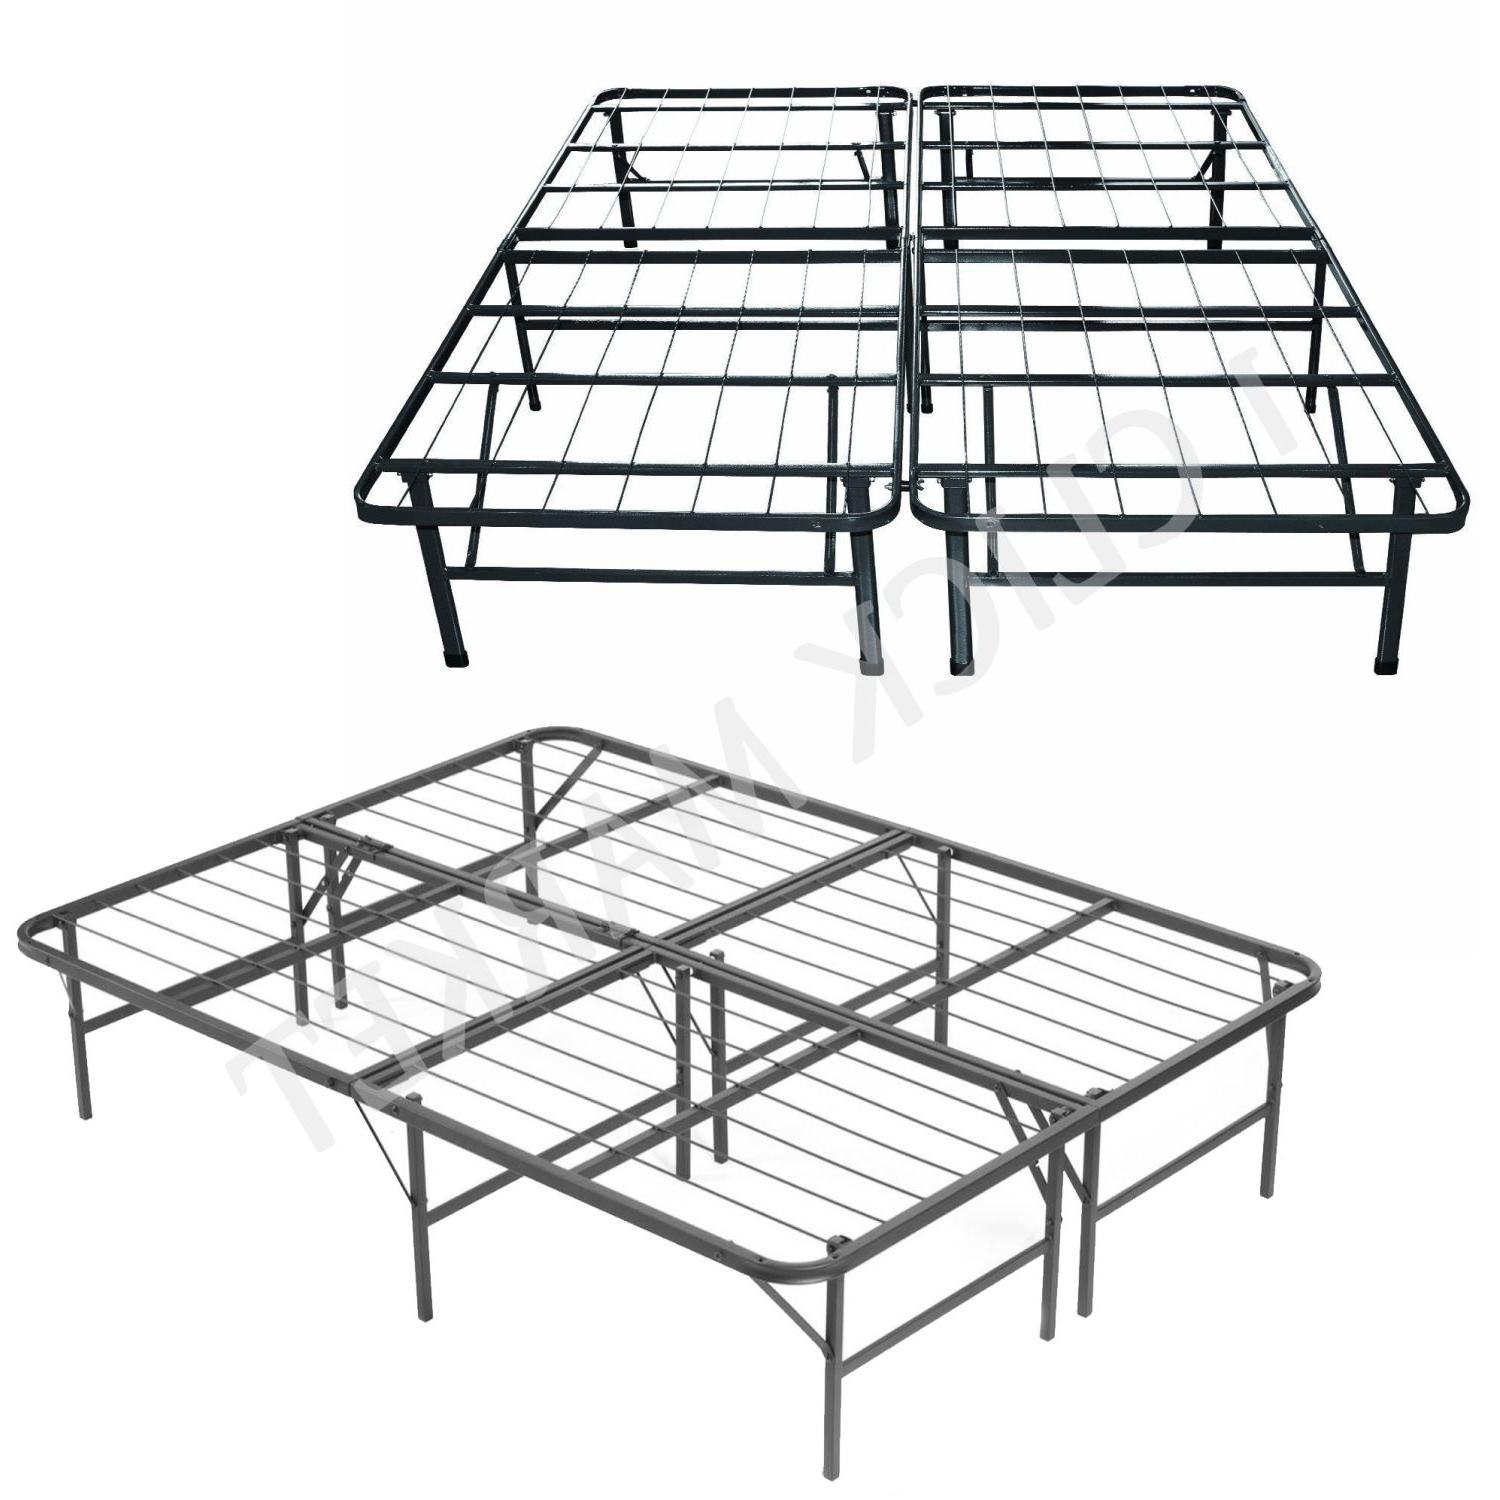 QUEEN Size Bed Heavy Duty Metal Mattress Foundation